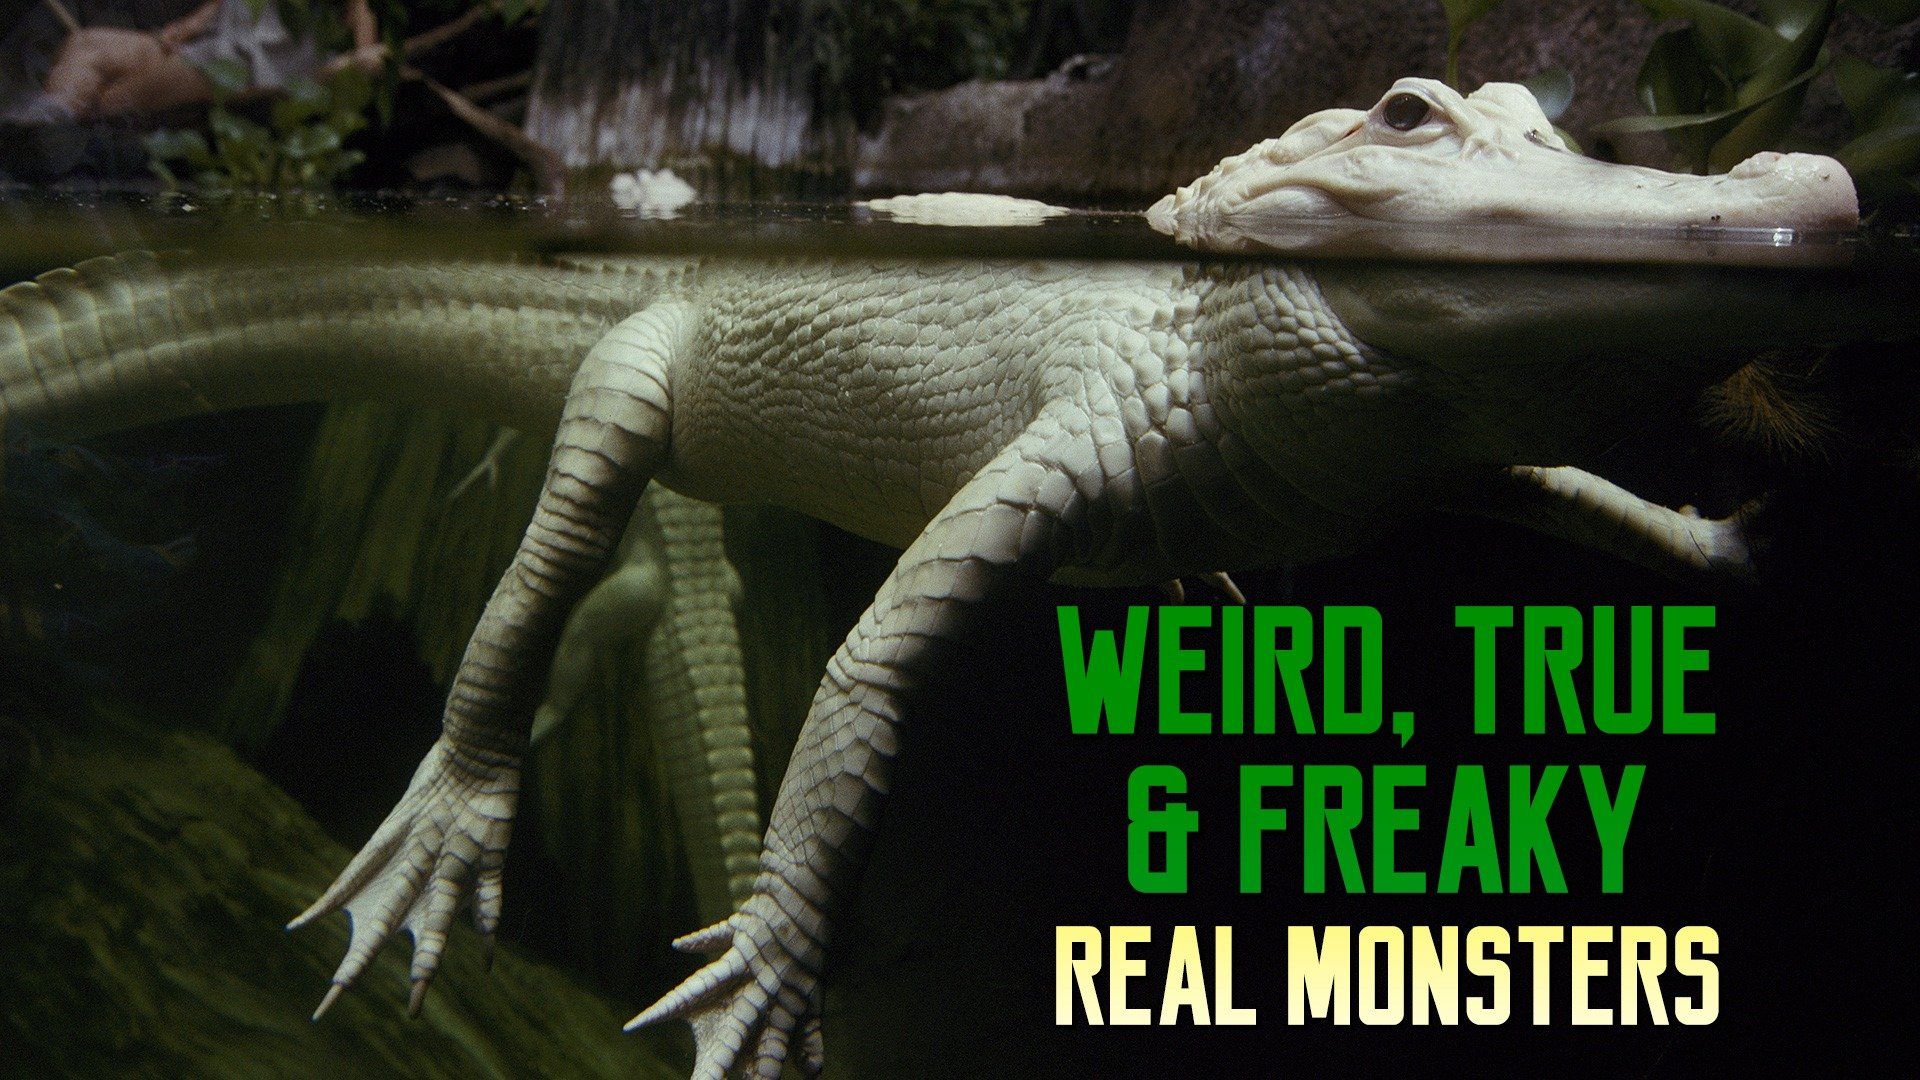 Weird, True & Freaky: Real Monsters